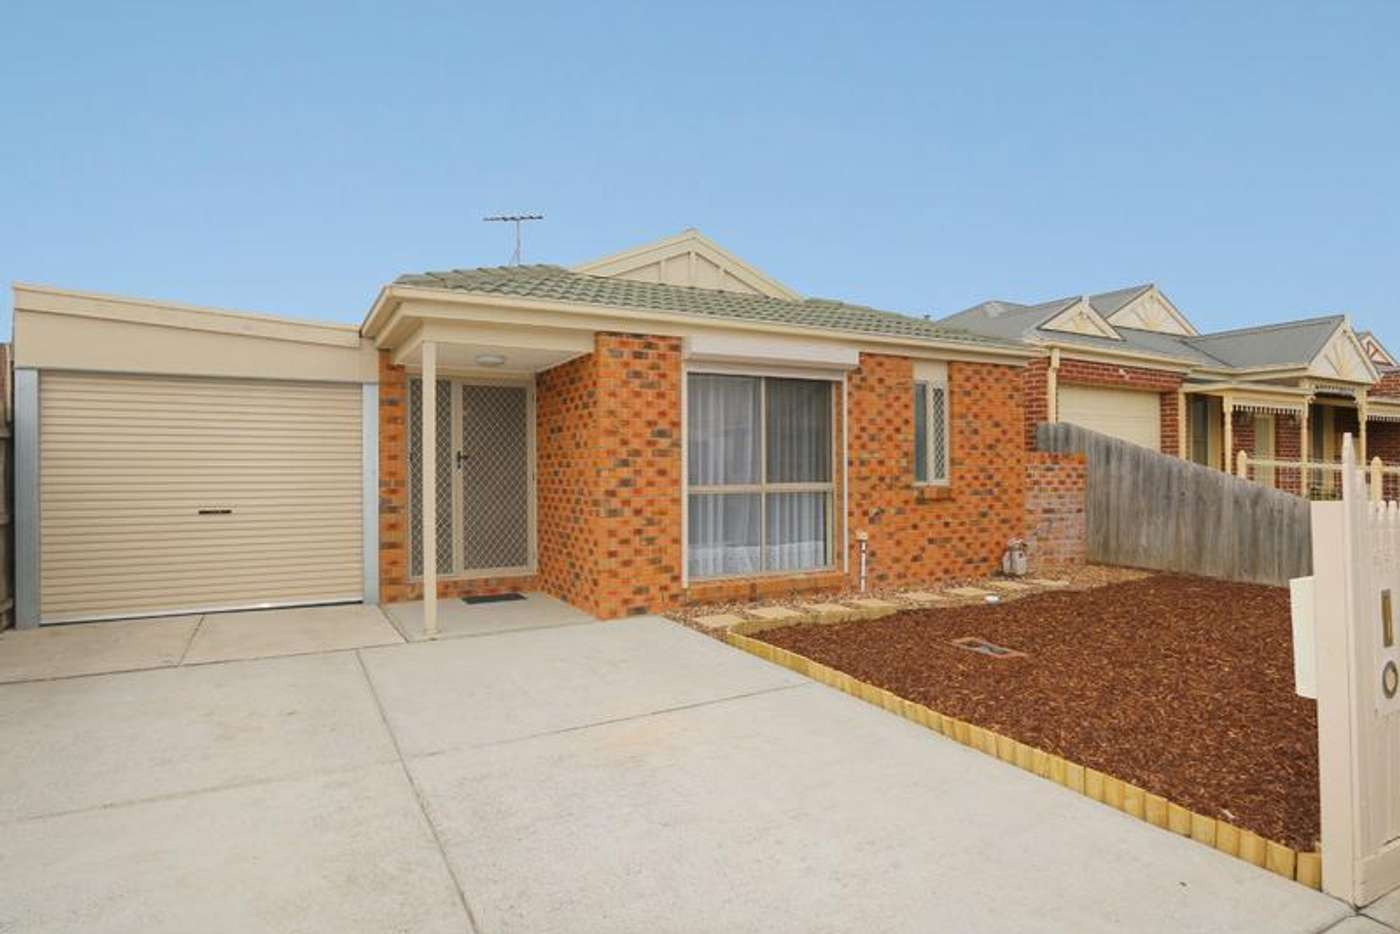 Main view of Homely house listing, 99 Pannam Drive, Hoppers Crossing VIC 3029